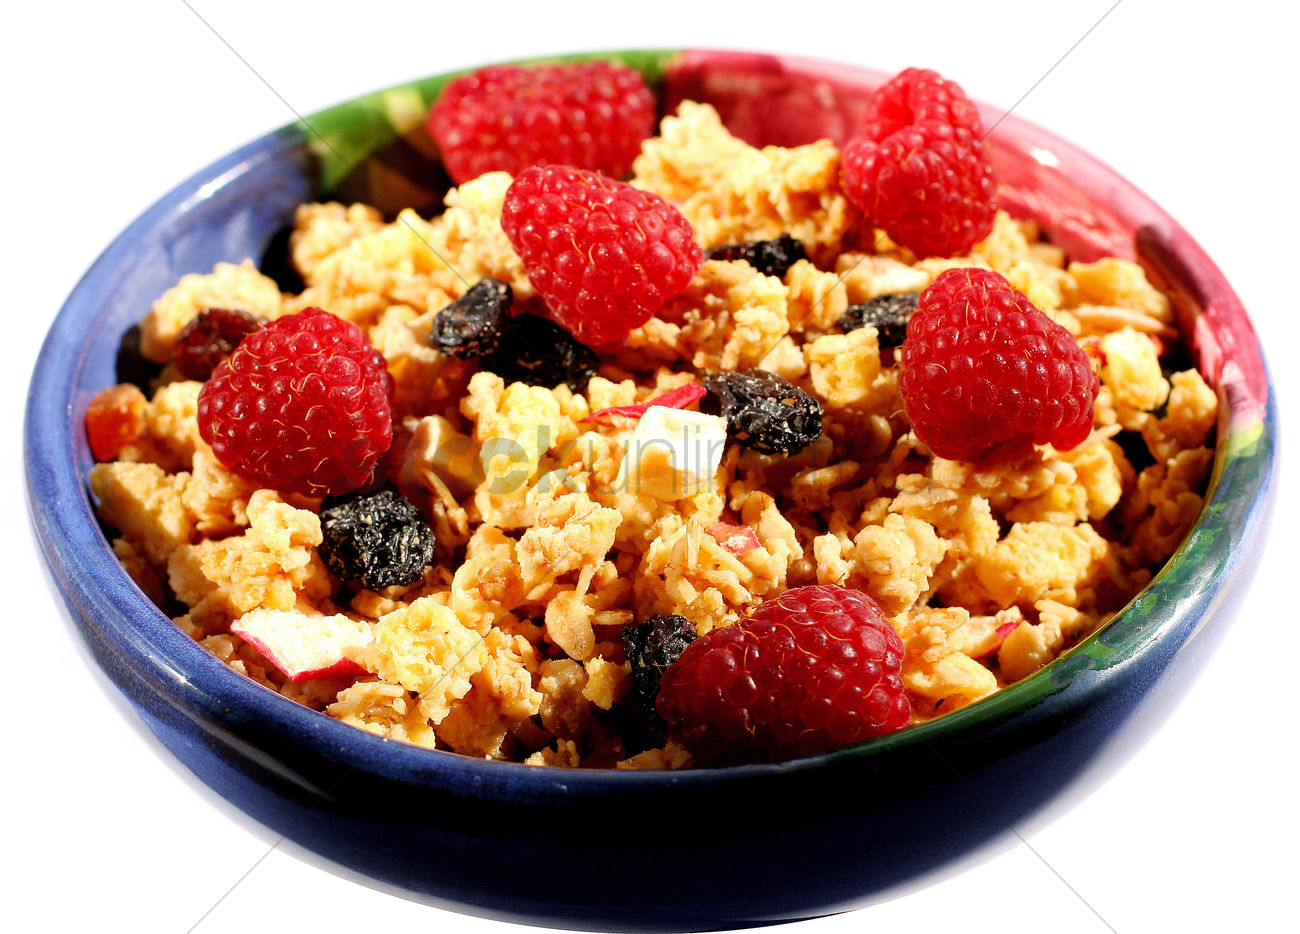 Breakfast cereal Stock Photo - 1689576 | StockUnlimited